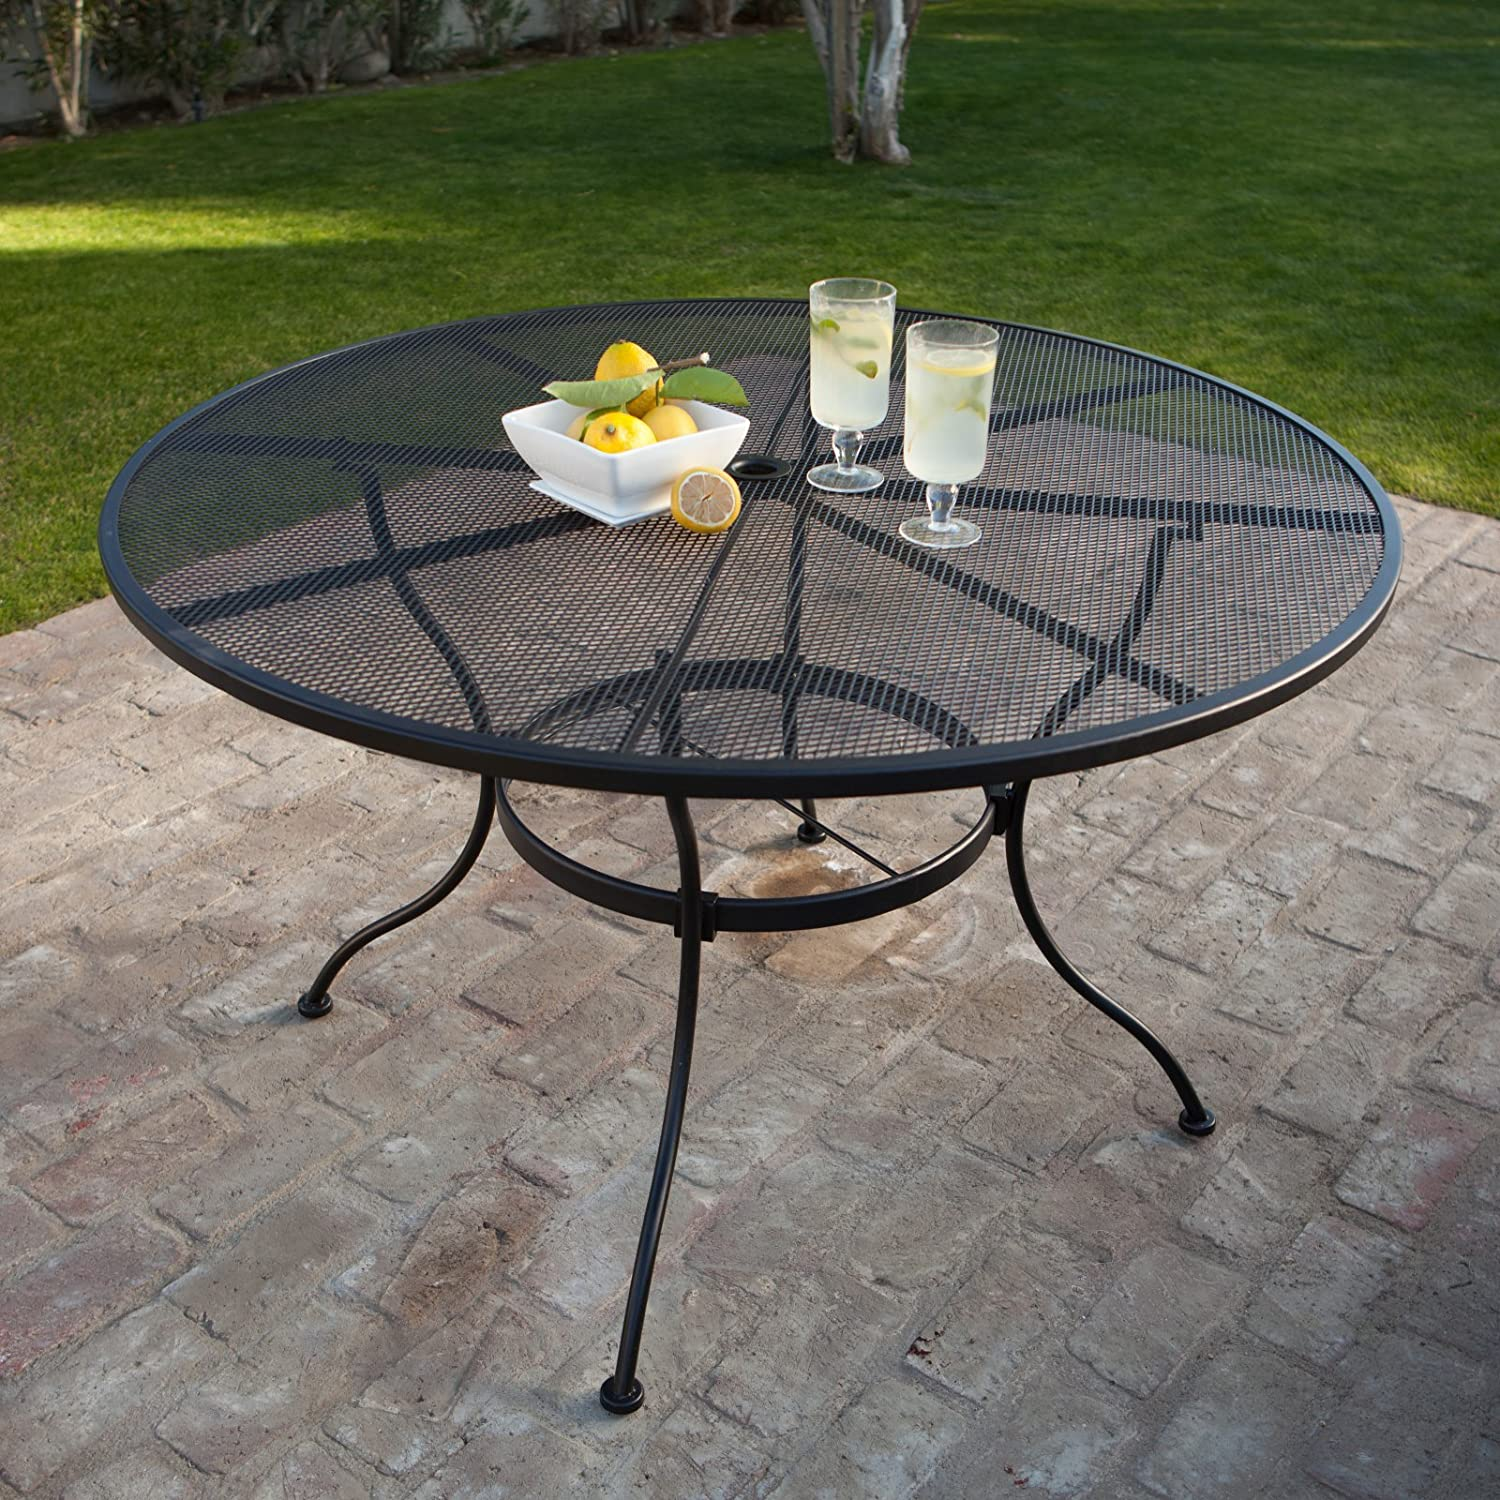 Amazon Com Belham Living Stanton 48 In Round Wrought Iron Patio Dining Table By Woodard Textured Black Kitchen Dining